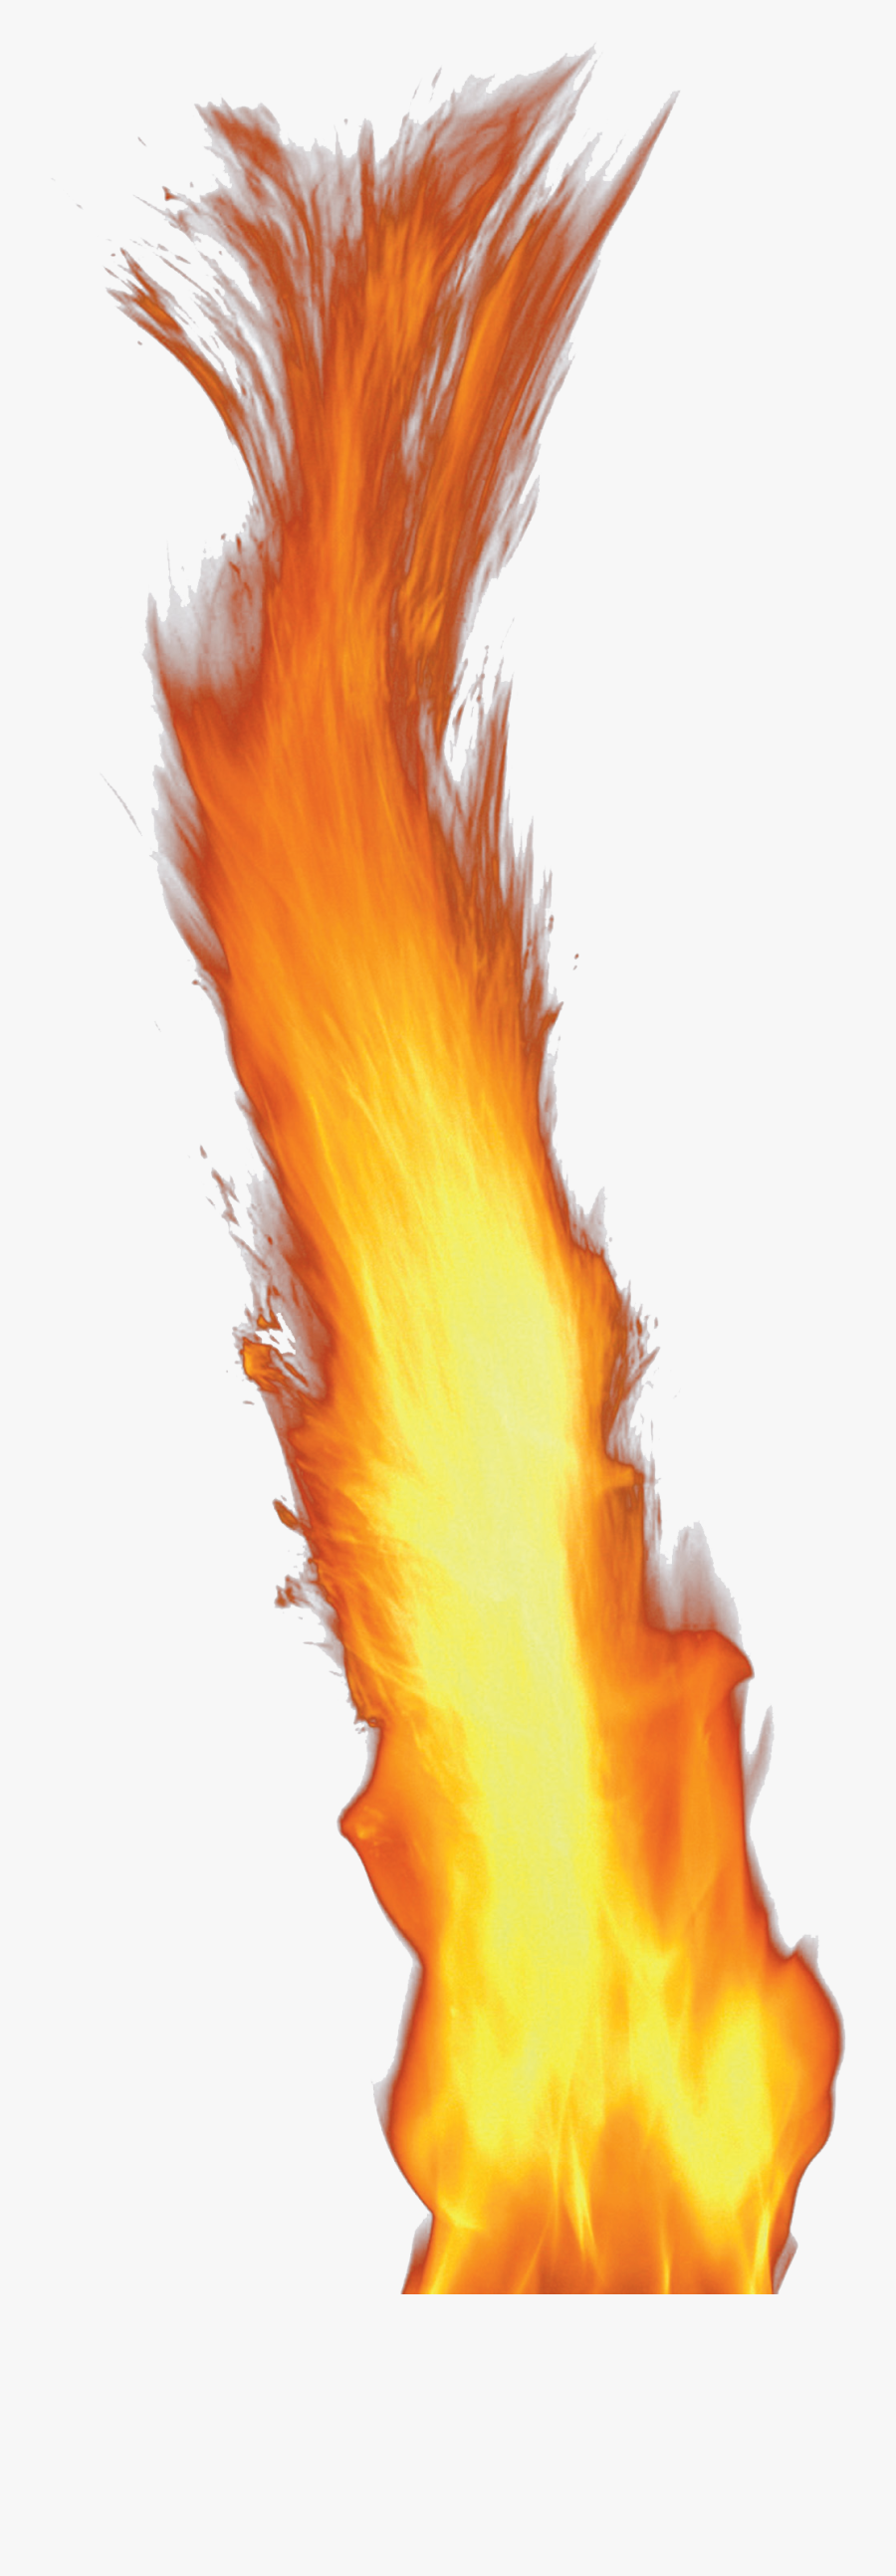 Fire Flame Png Image - Transparent Background Fire Png Gif, Transparent Clipart